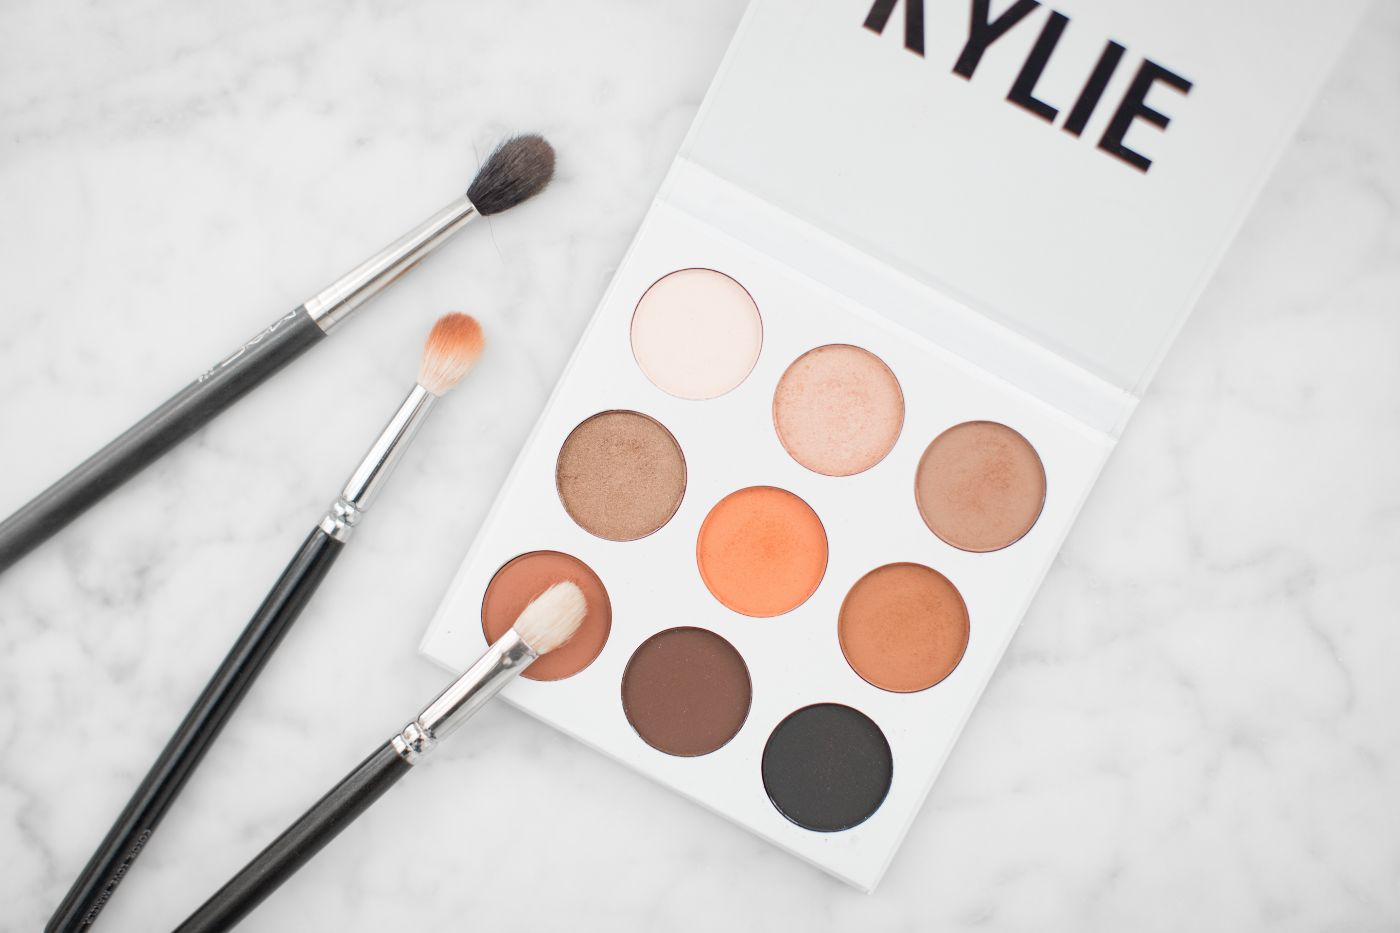 lily-pebbles-kylie-cosmetics-eye-shadow-palette-october-2016-1